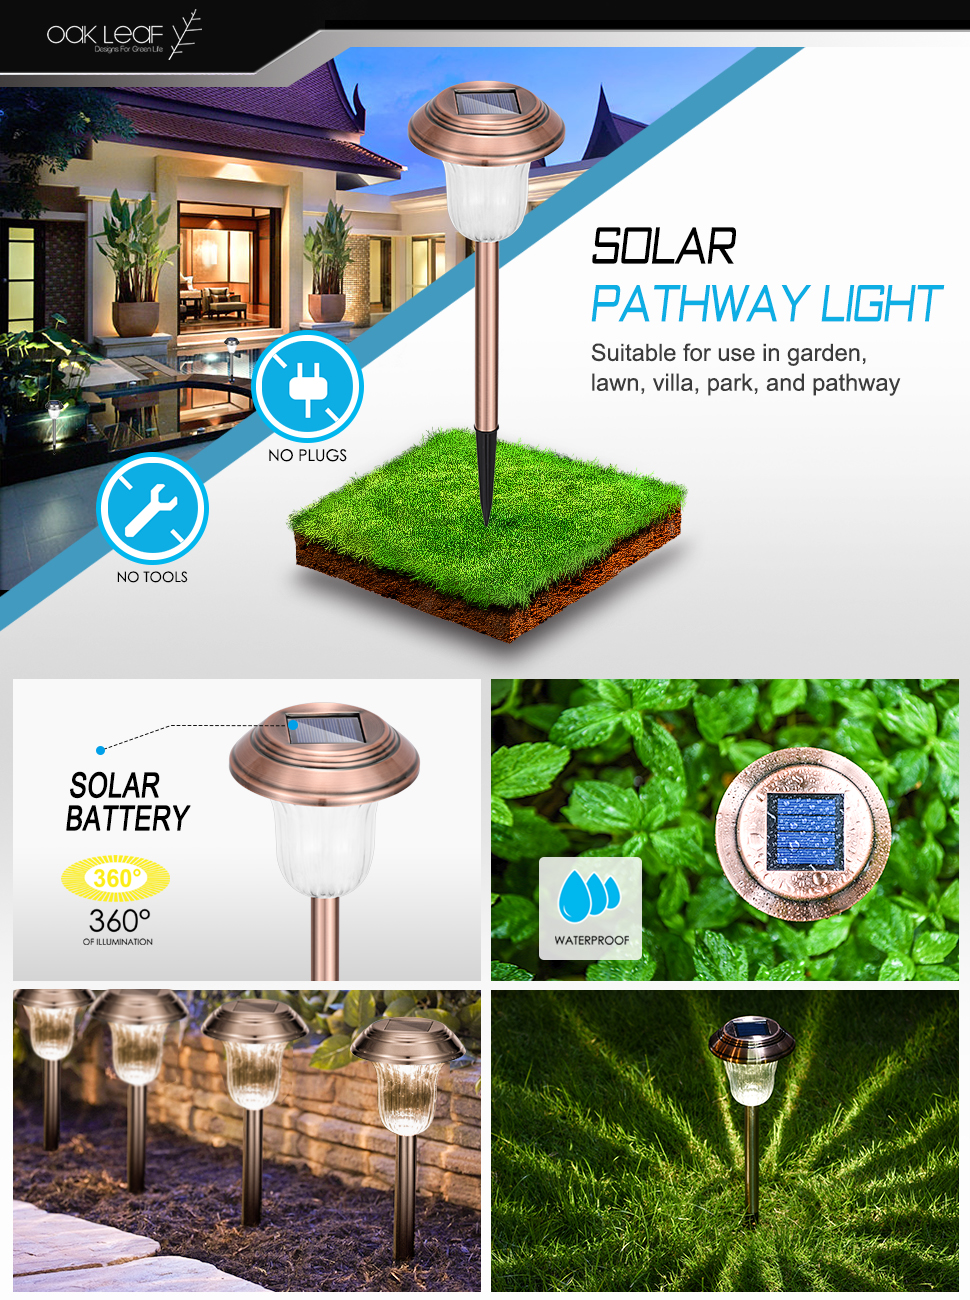 solar path lights to light up your pathway for visibility and decoration this elegantly designed solar light is made of beautiful stainless steel - Solar Pathway Lights